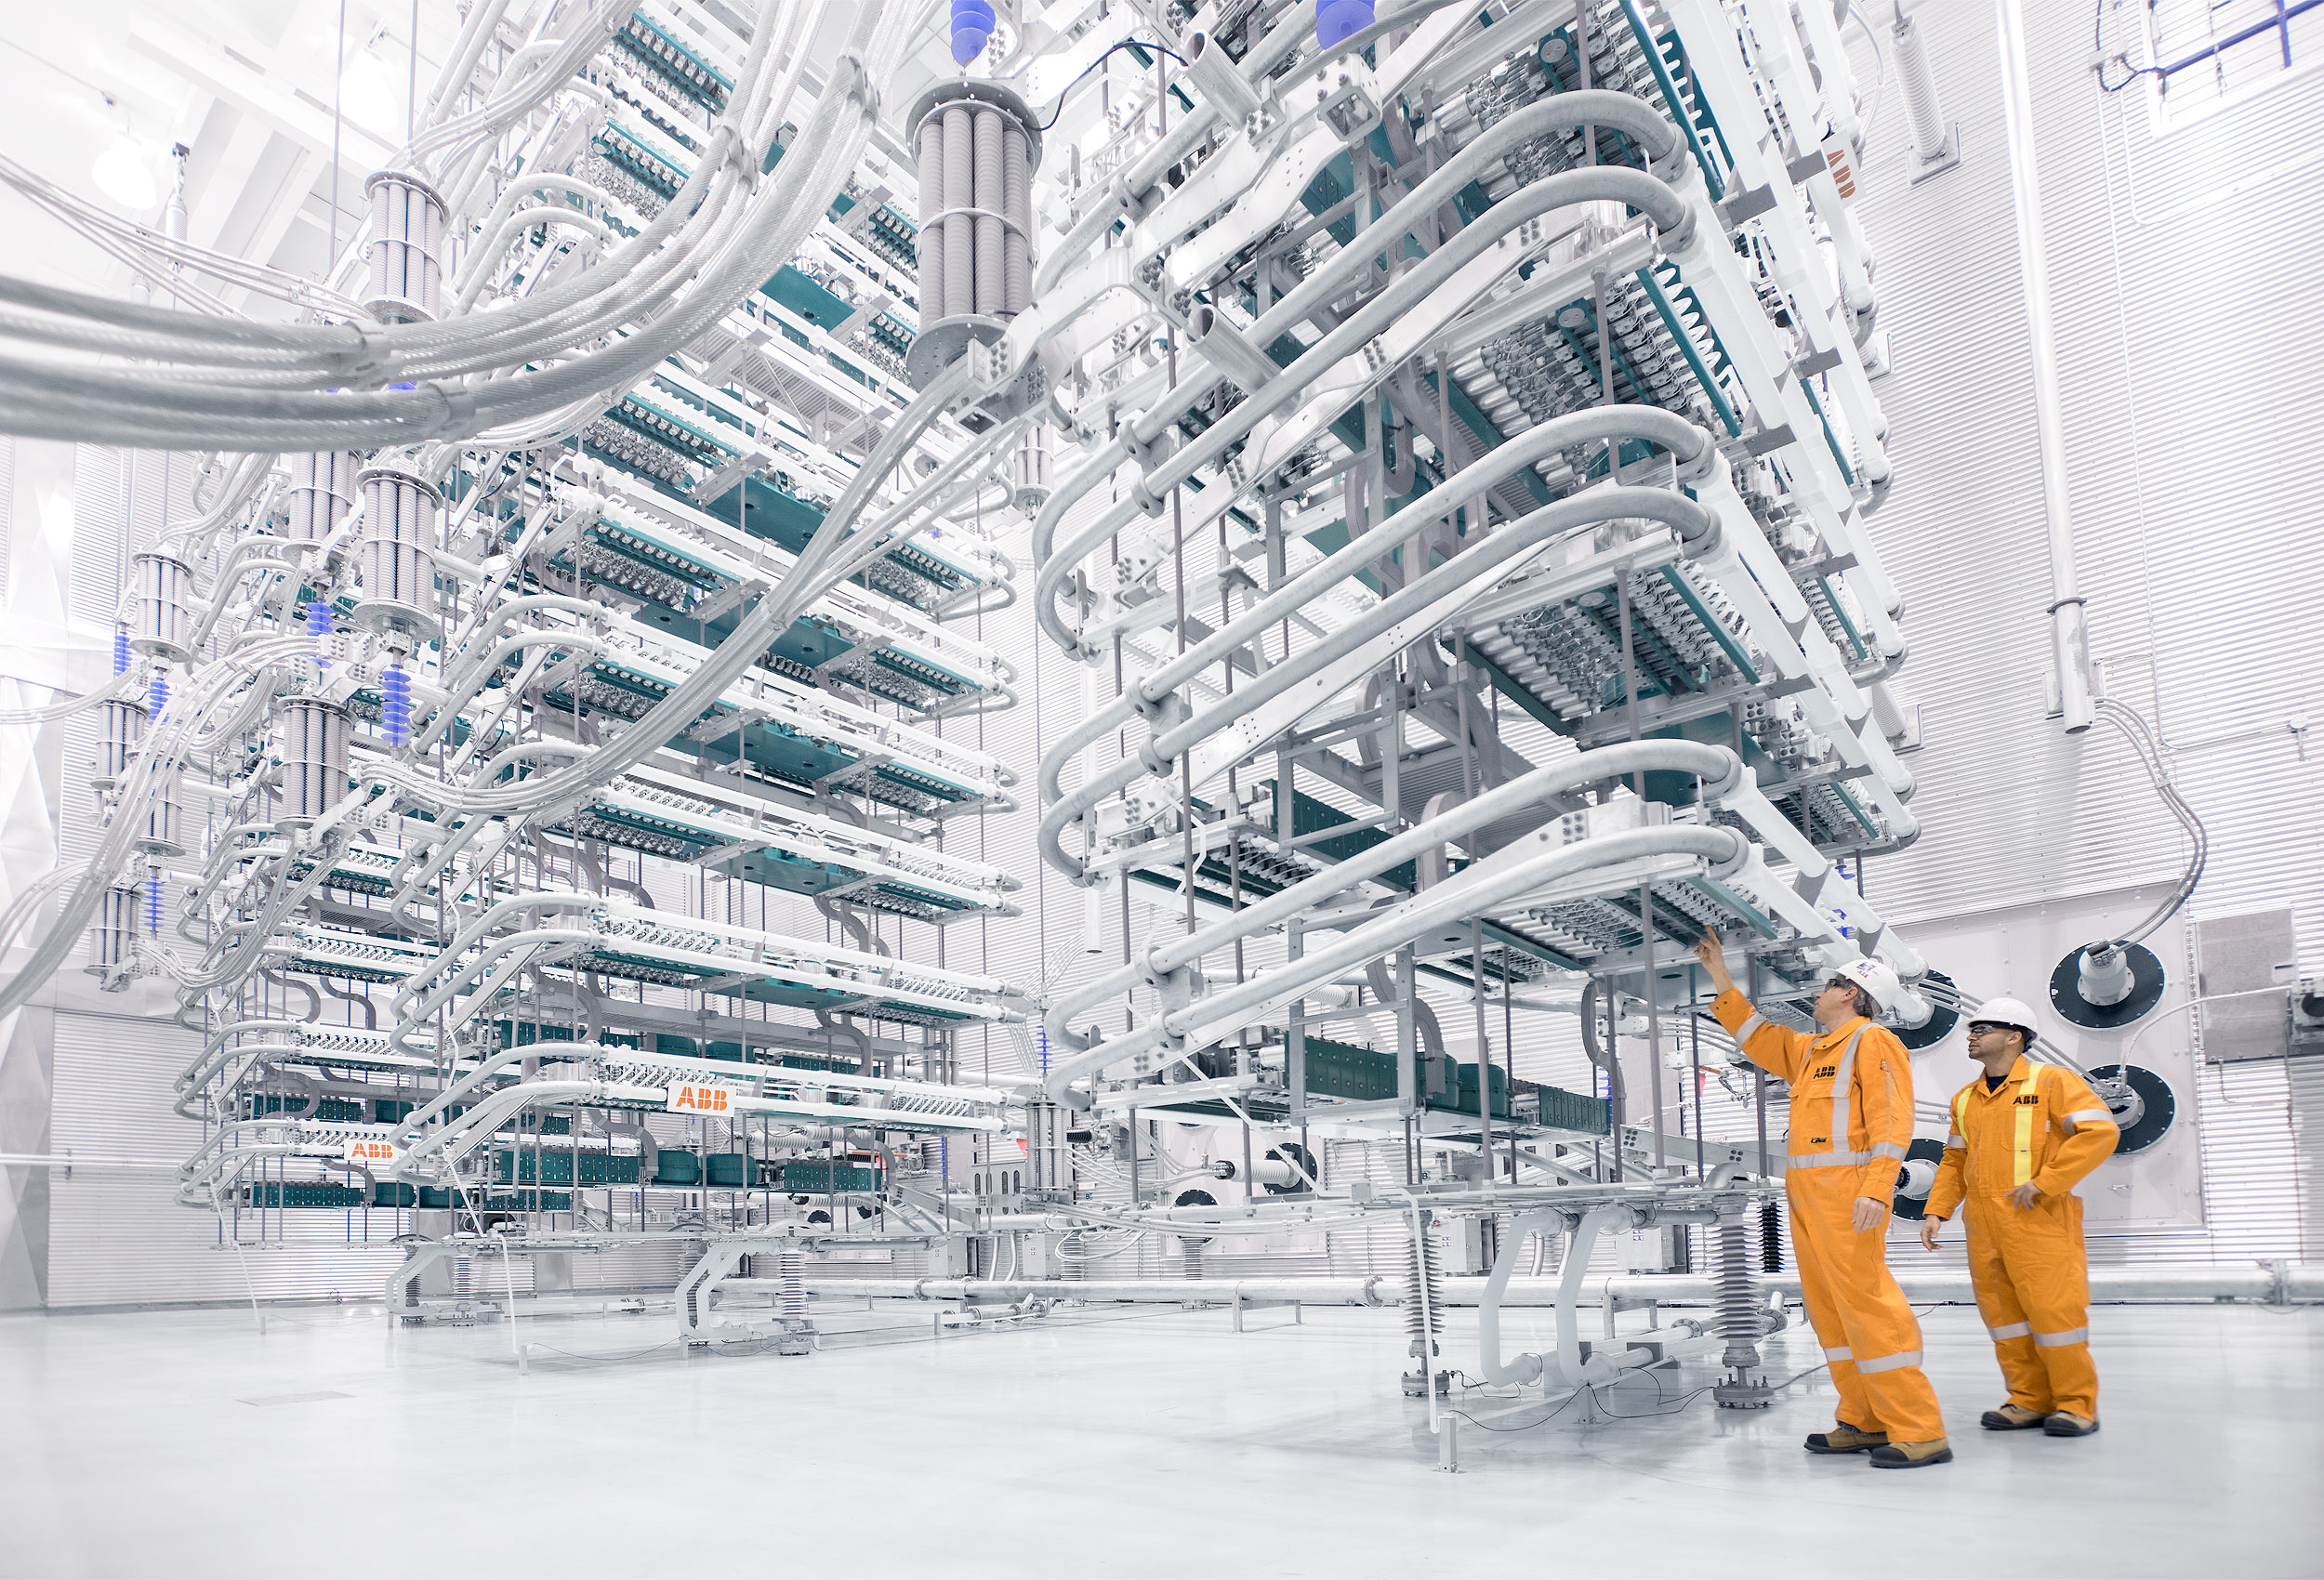 HVDC Valve Hall by corporate industrial photographer Kristopher Grunert